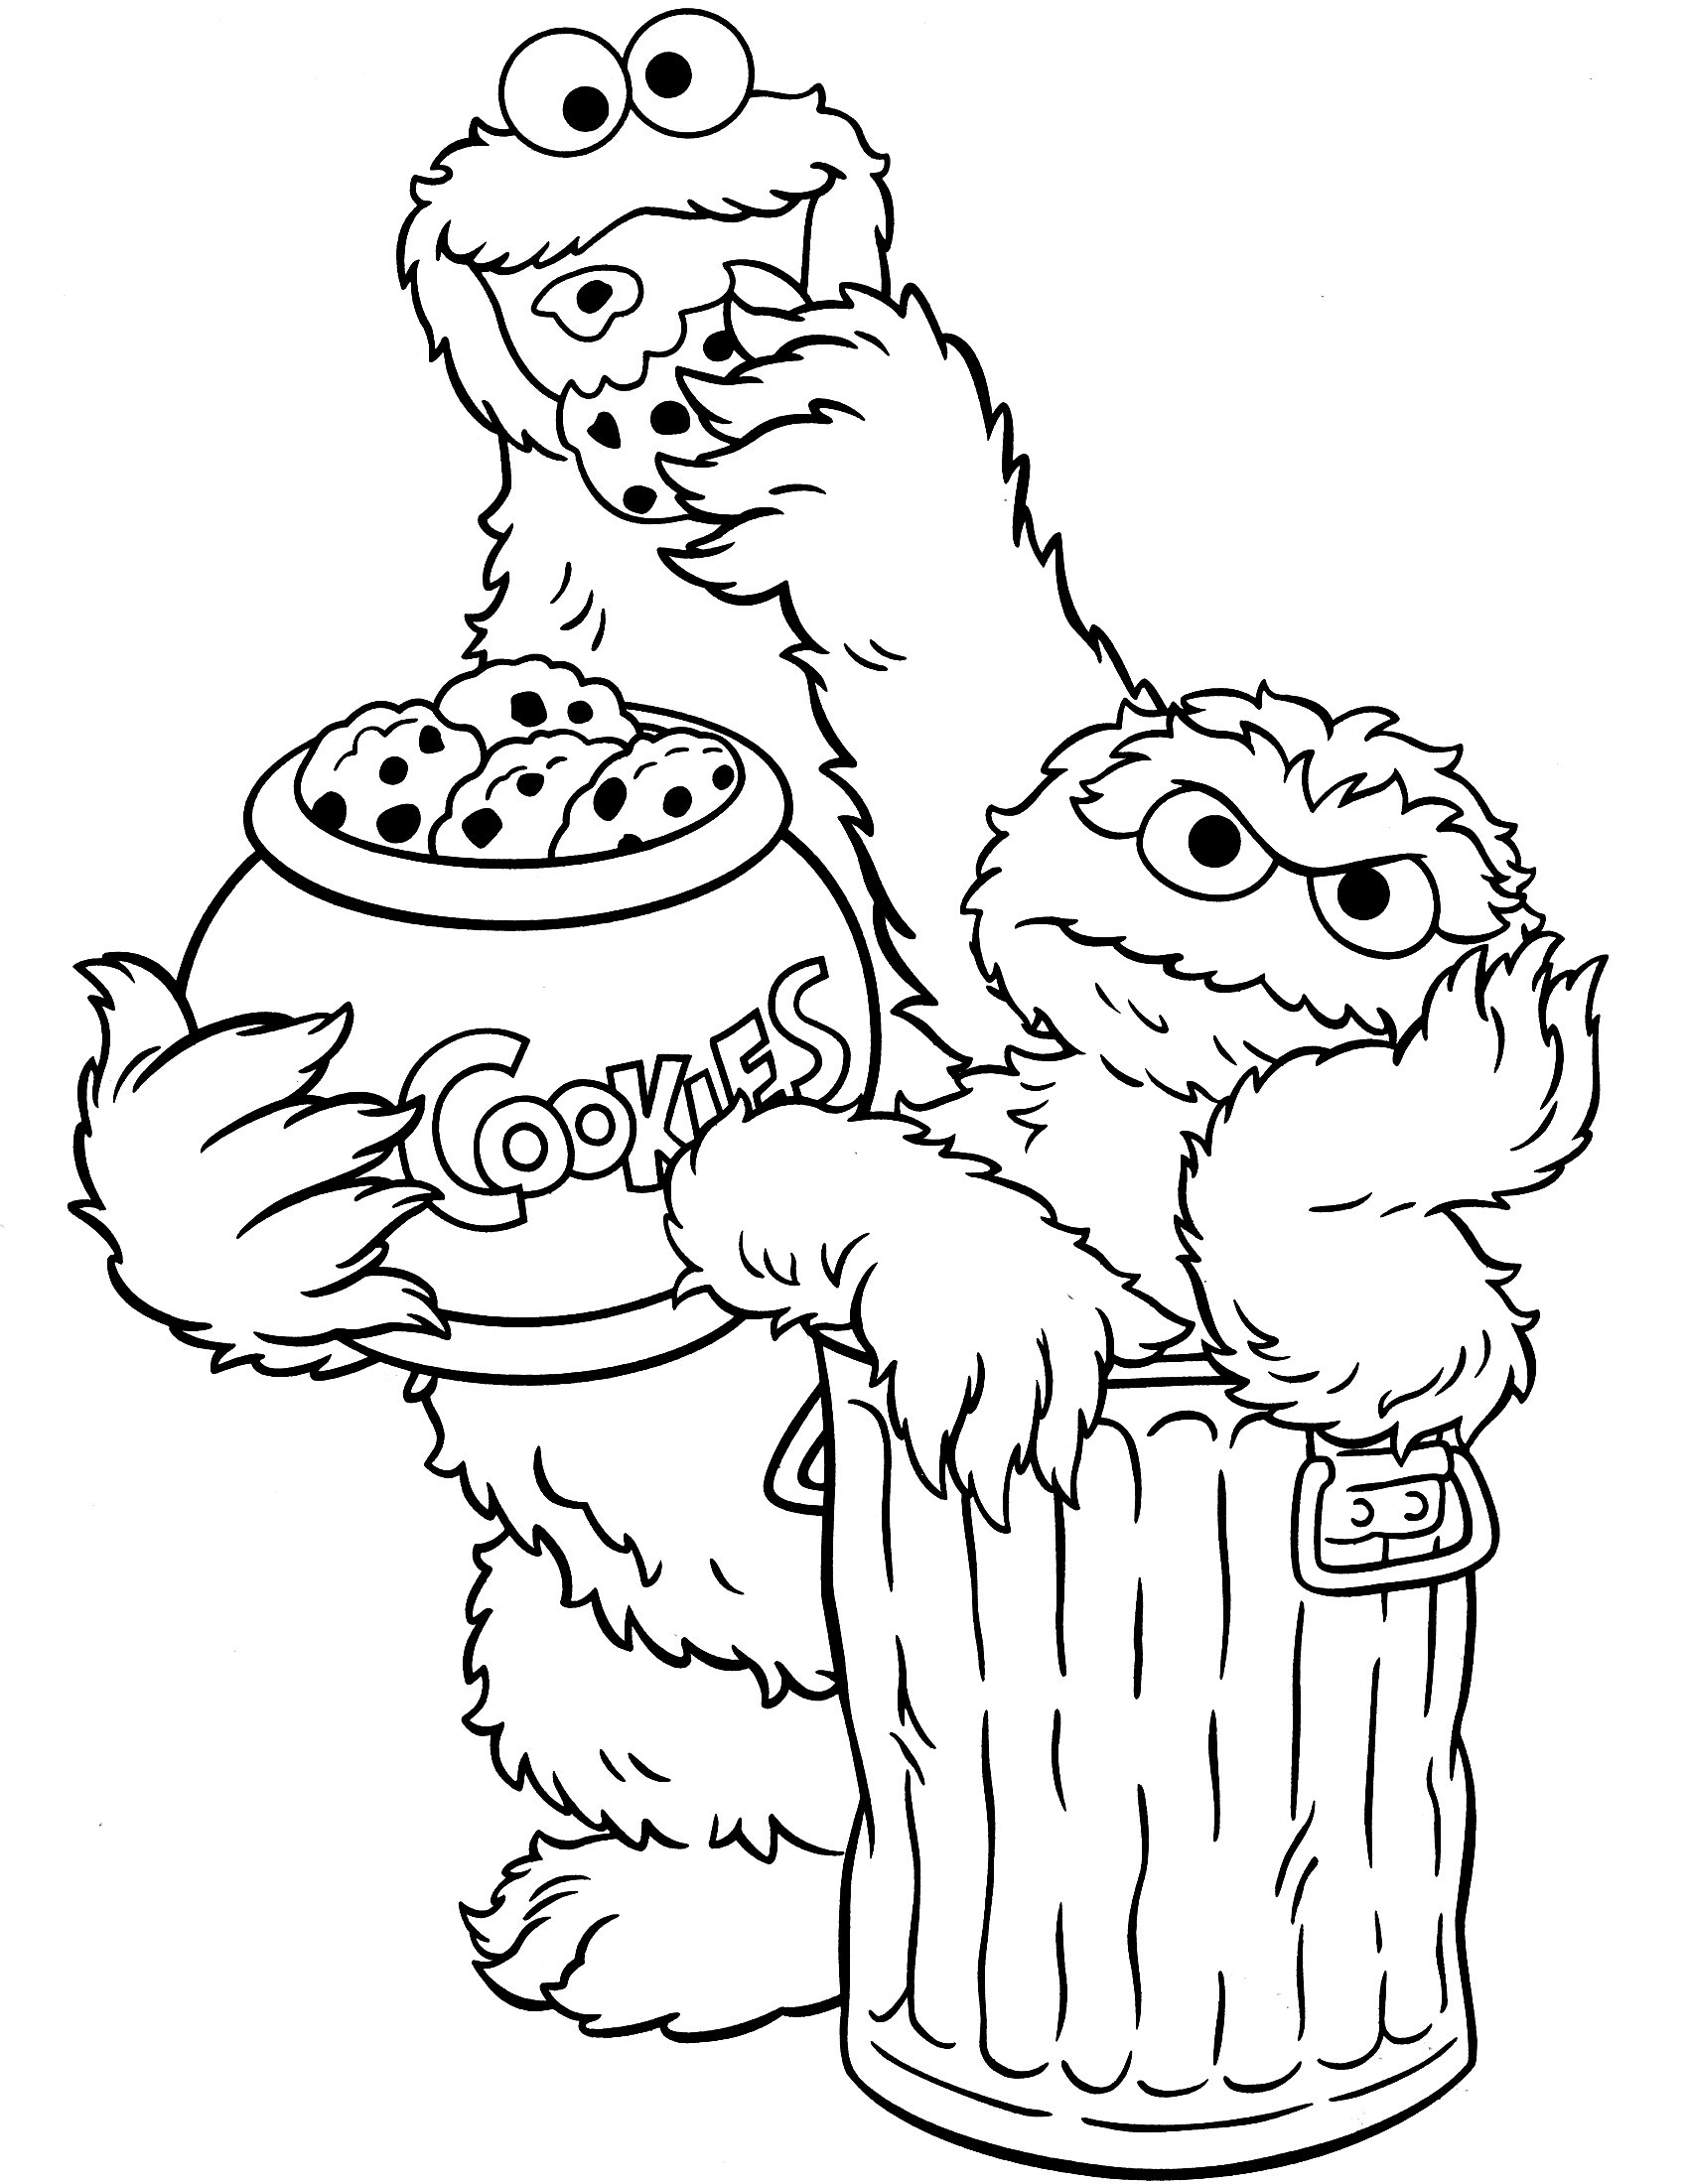 Coloring Pages : Sesame Street Characters Coloring Sheets Open Pages - Free Printable Coloring Pages Sesame Street Characters